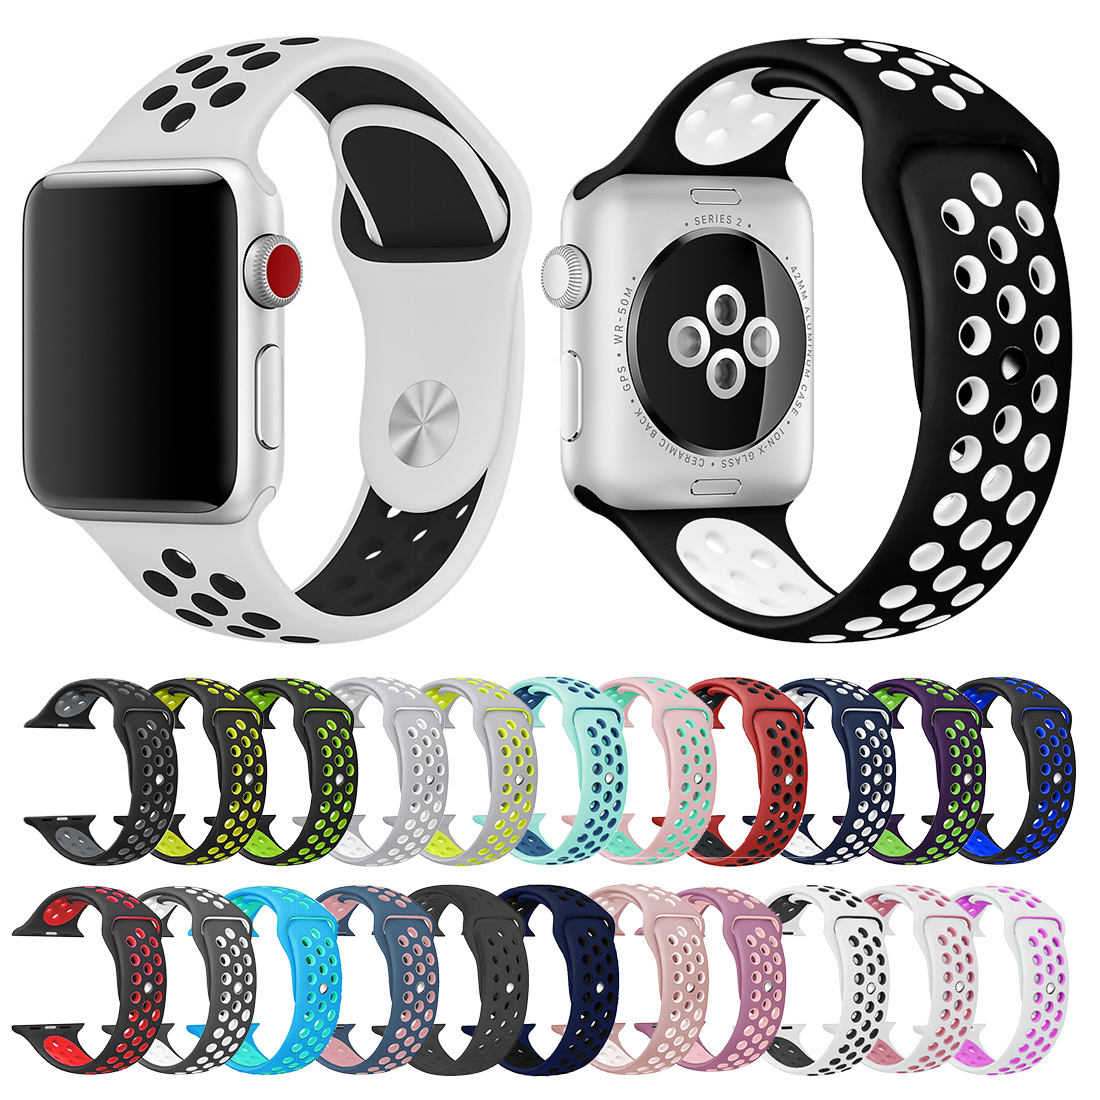 Soft Silicone Replacement Wristband for Apple Watch Series 1 2 3 Breathable hole iwatch band 42mm iwatch watchband 38mm strap soft silicone sport band for apple watch series 1 2 3 38mm 42mm rubber strap replacement watchband for iwatch series 4 wristband